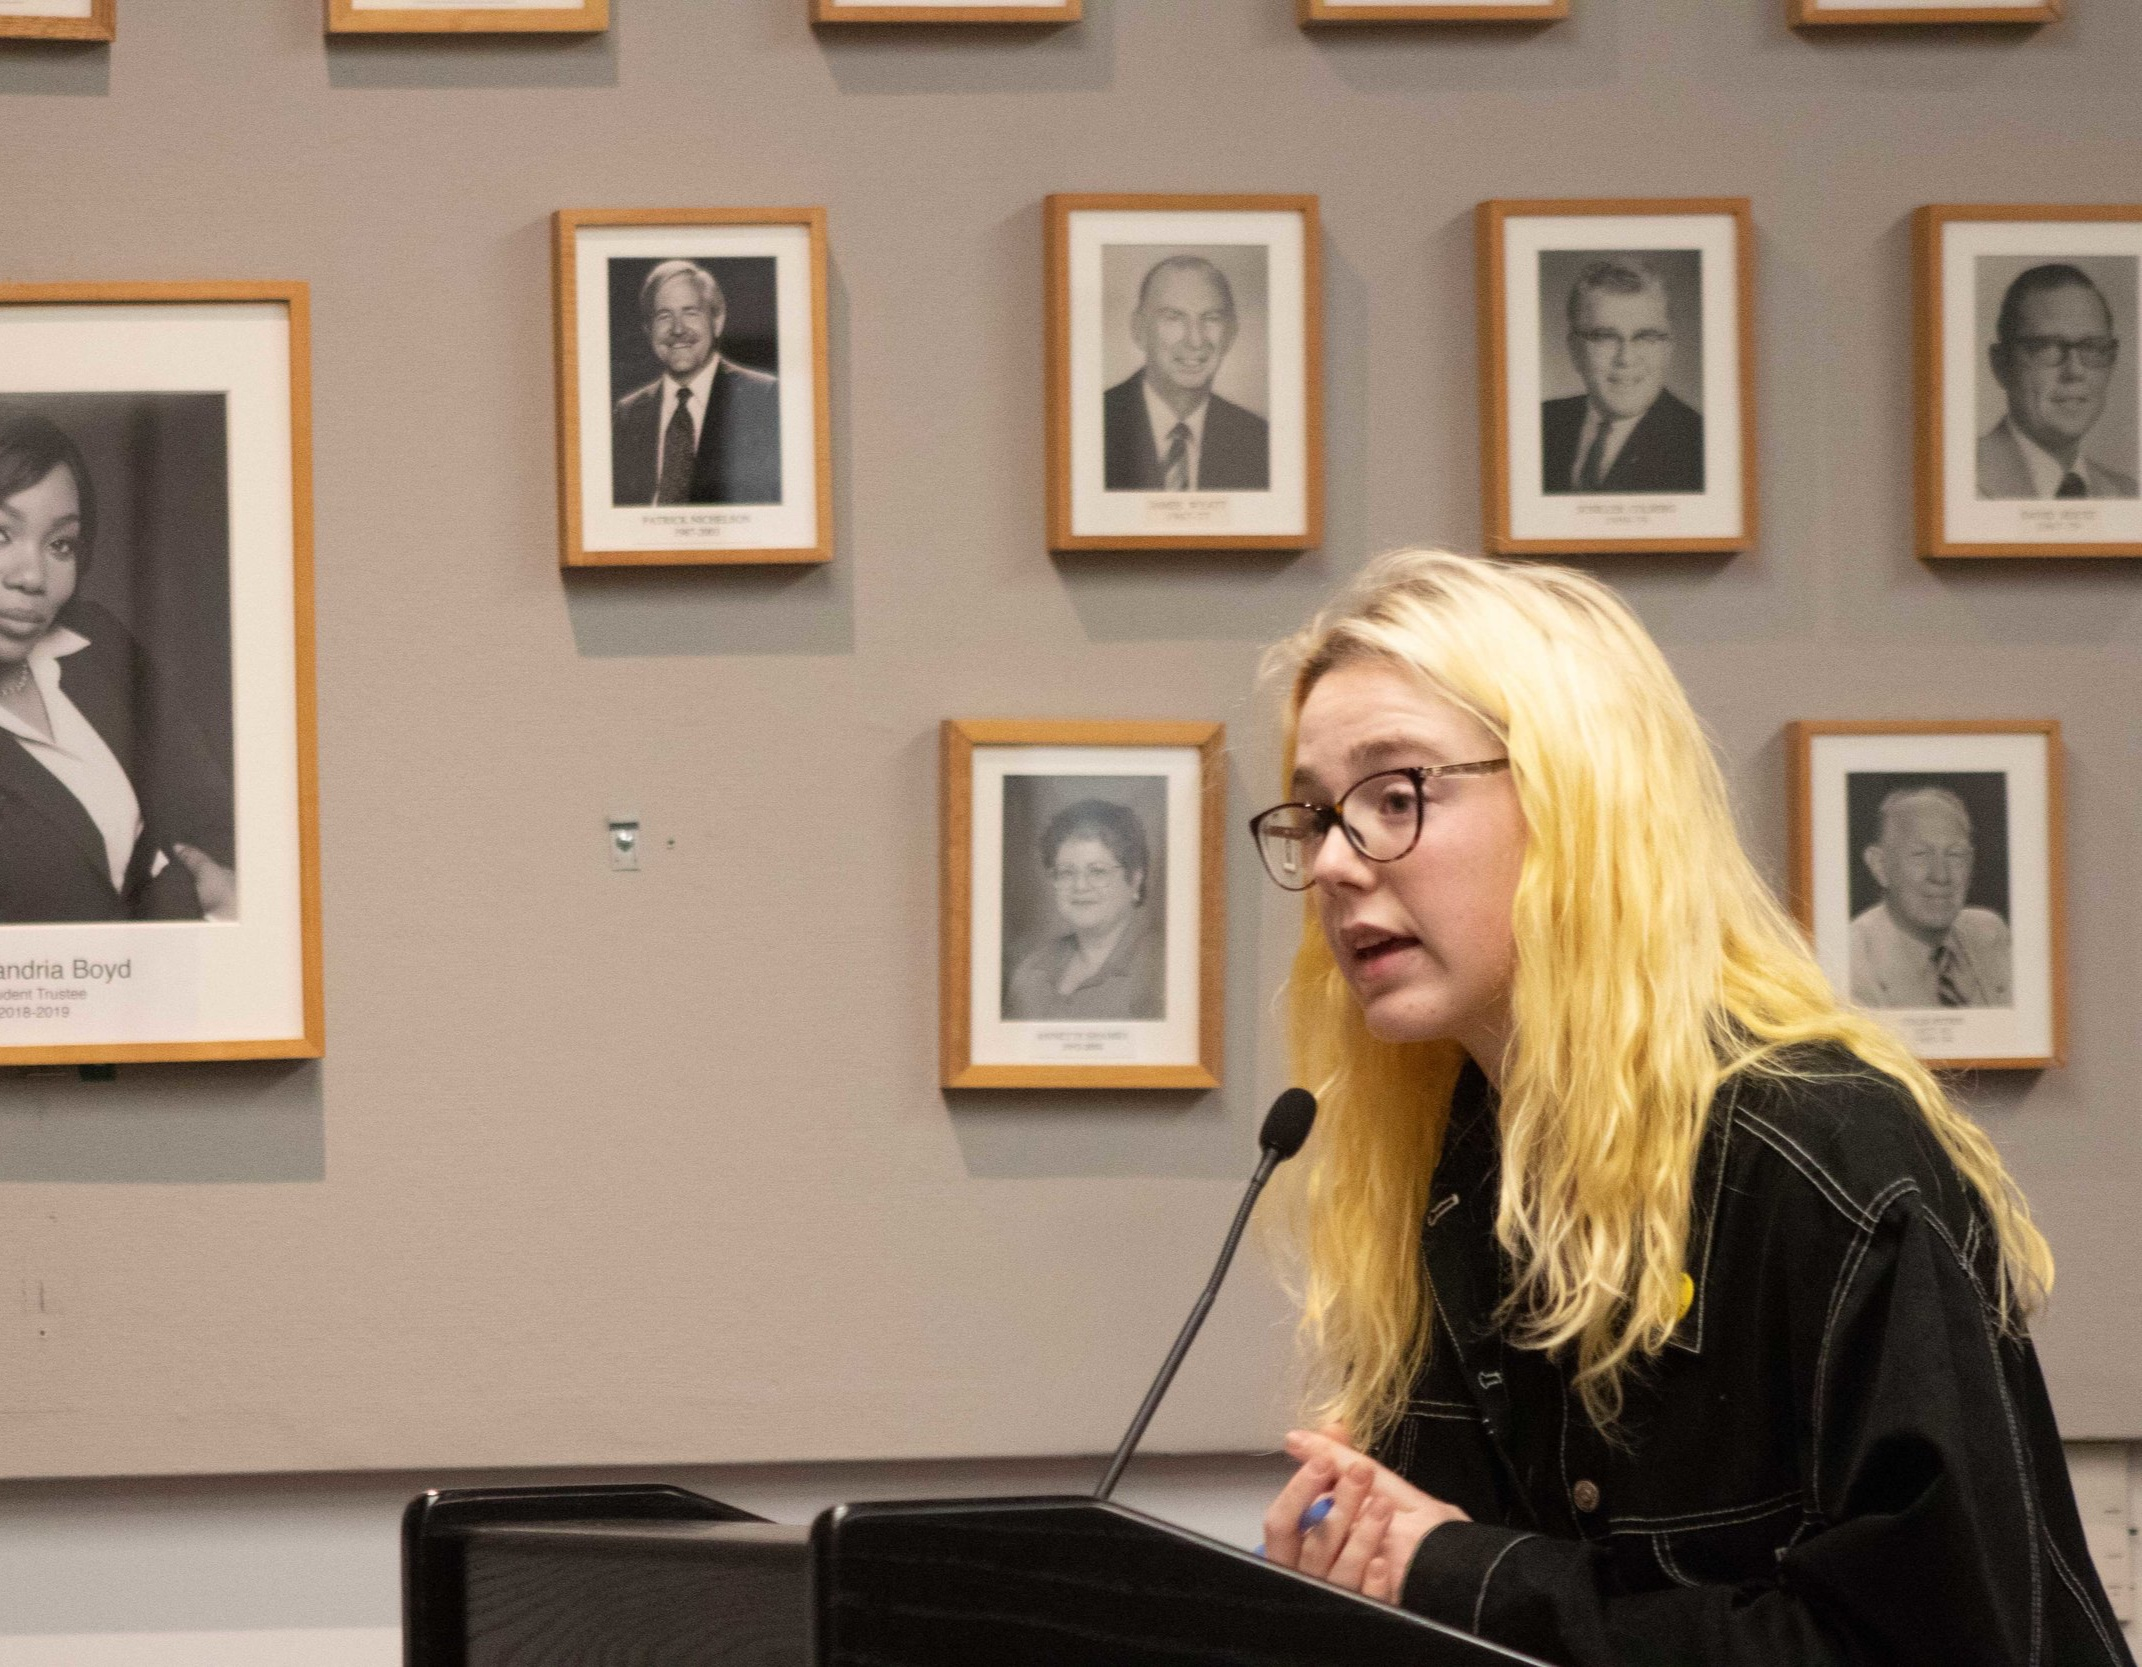 Brooke Harrington goes before the Trustee board and is a future student Trustee herself, replacing Alexandria Boyd next semester. March 2, 2019. (Pablo Eden Garcia/ The Corsair)